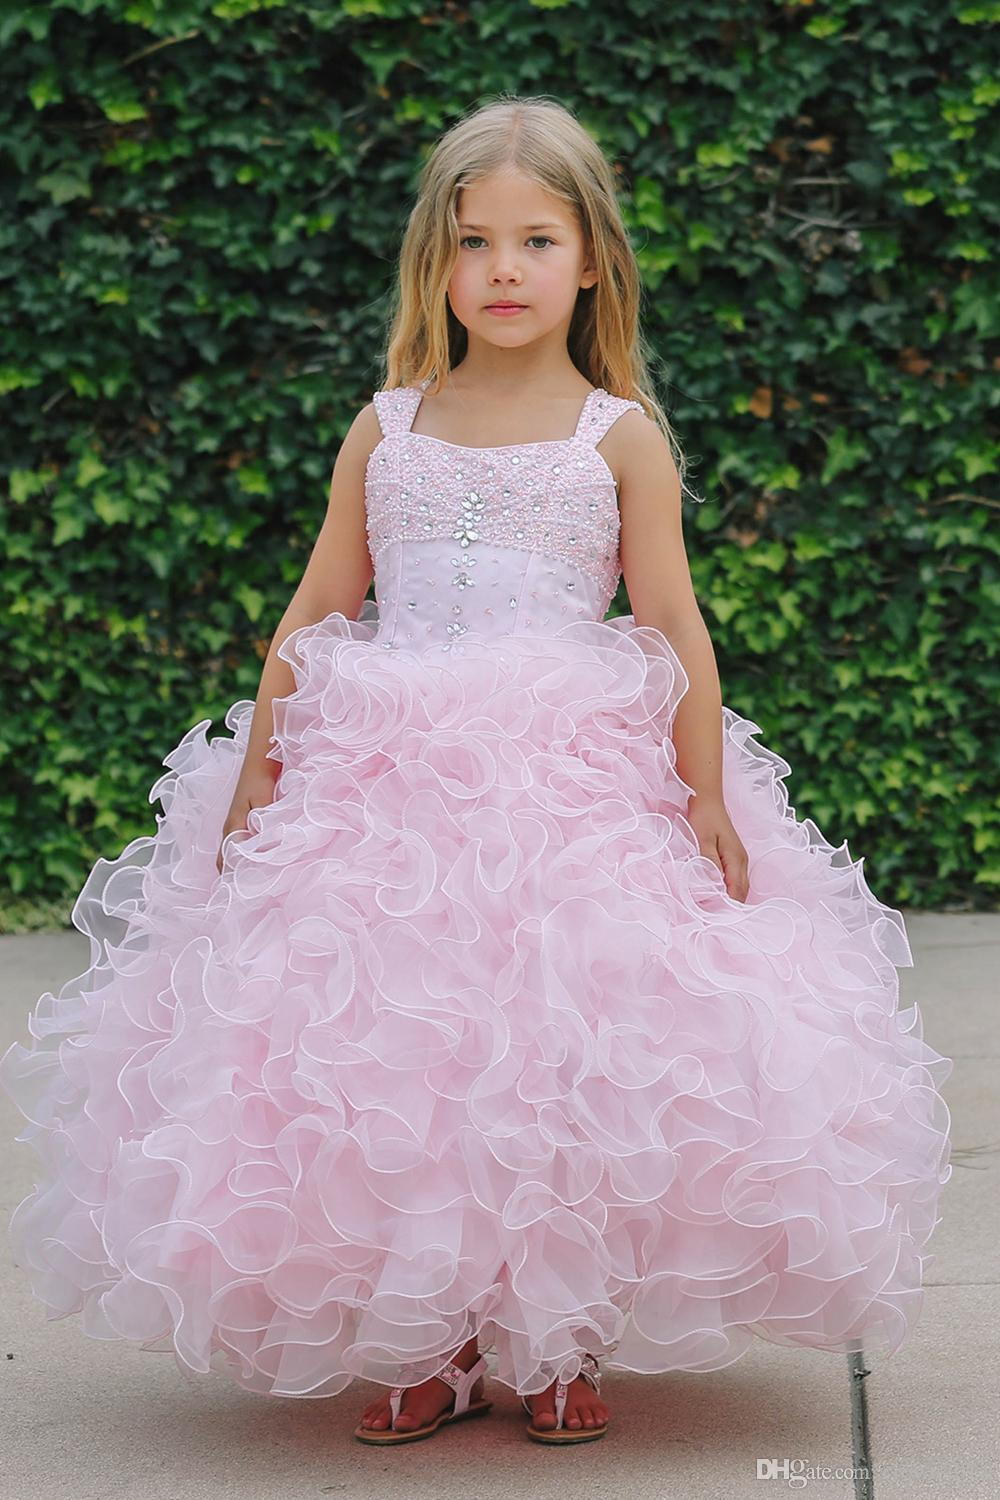 Pink Sleeveless Ruffle Organza Gown Flower Girl Dress with Beaded Bodice Girls Pageant Dresses Ball Gown Little Girl Dress For Weddings